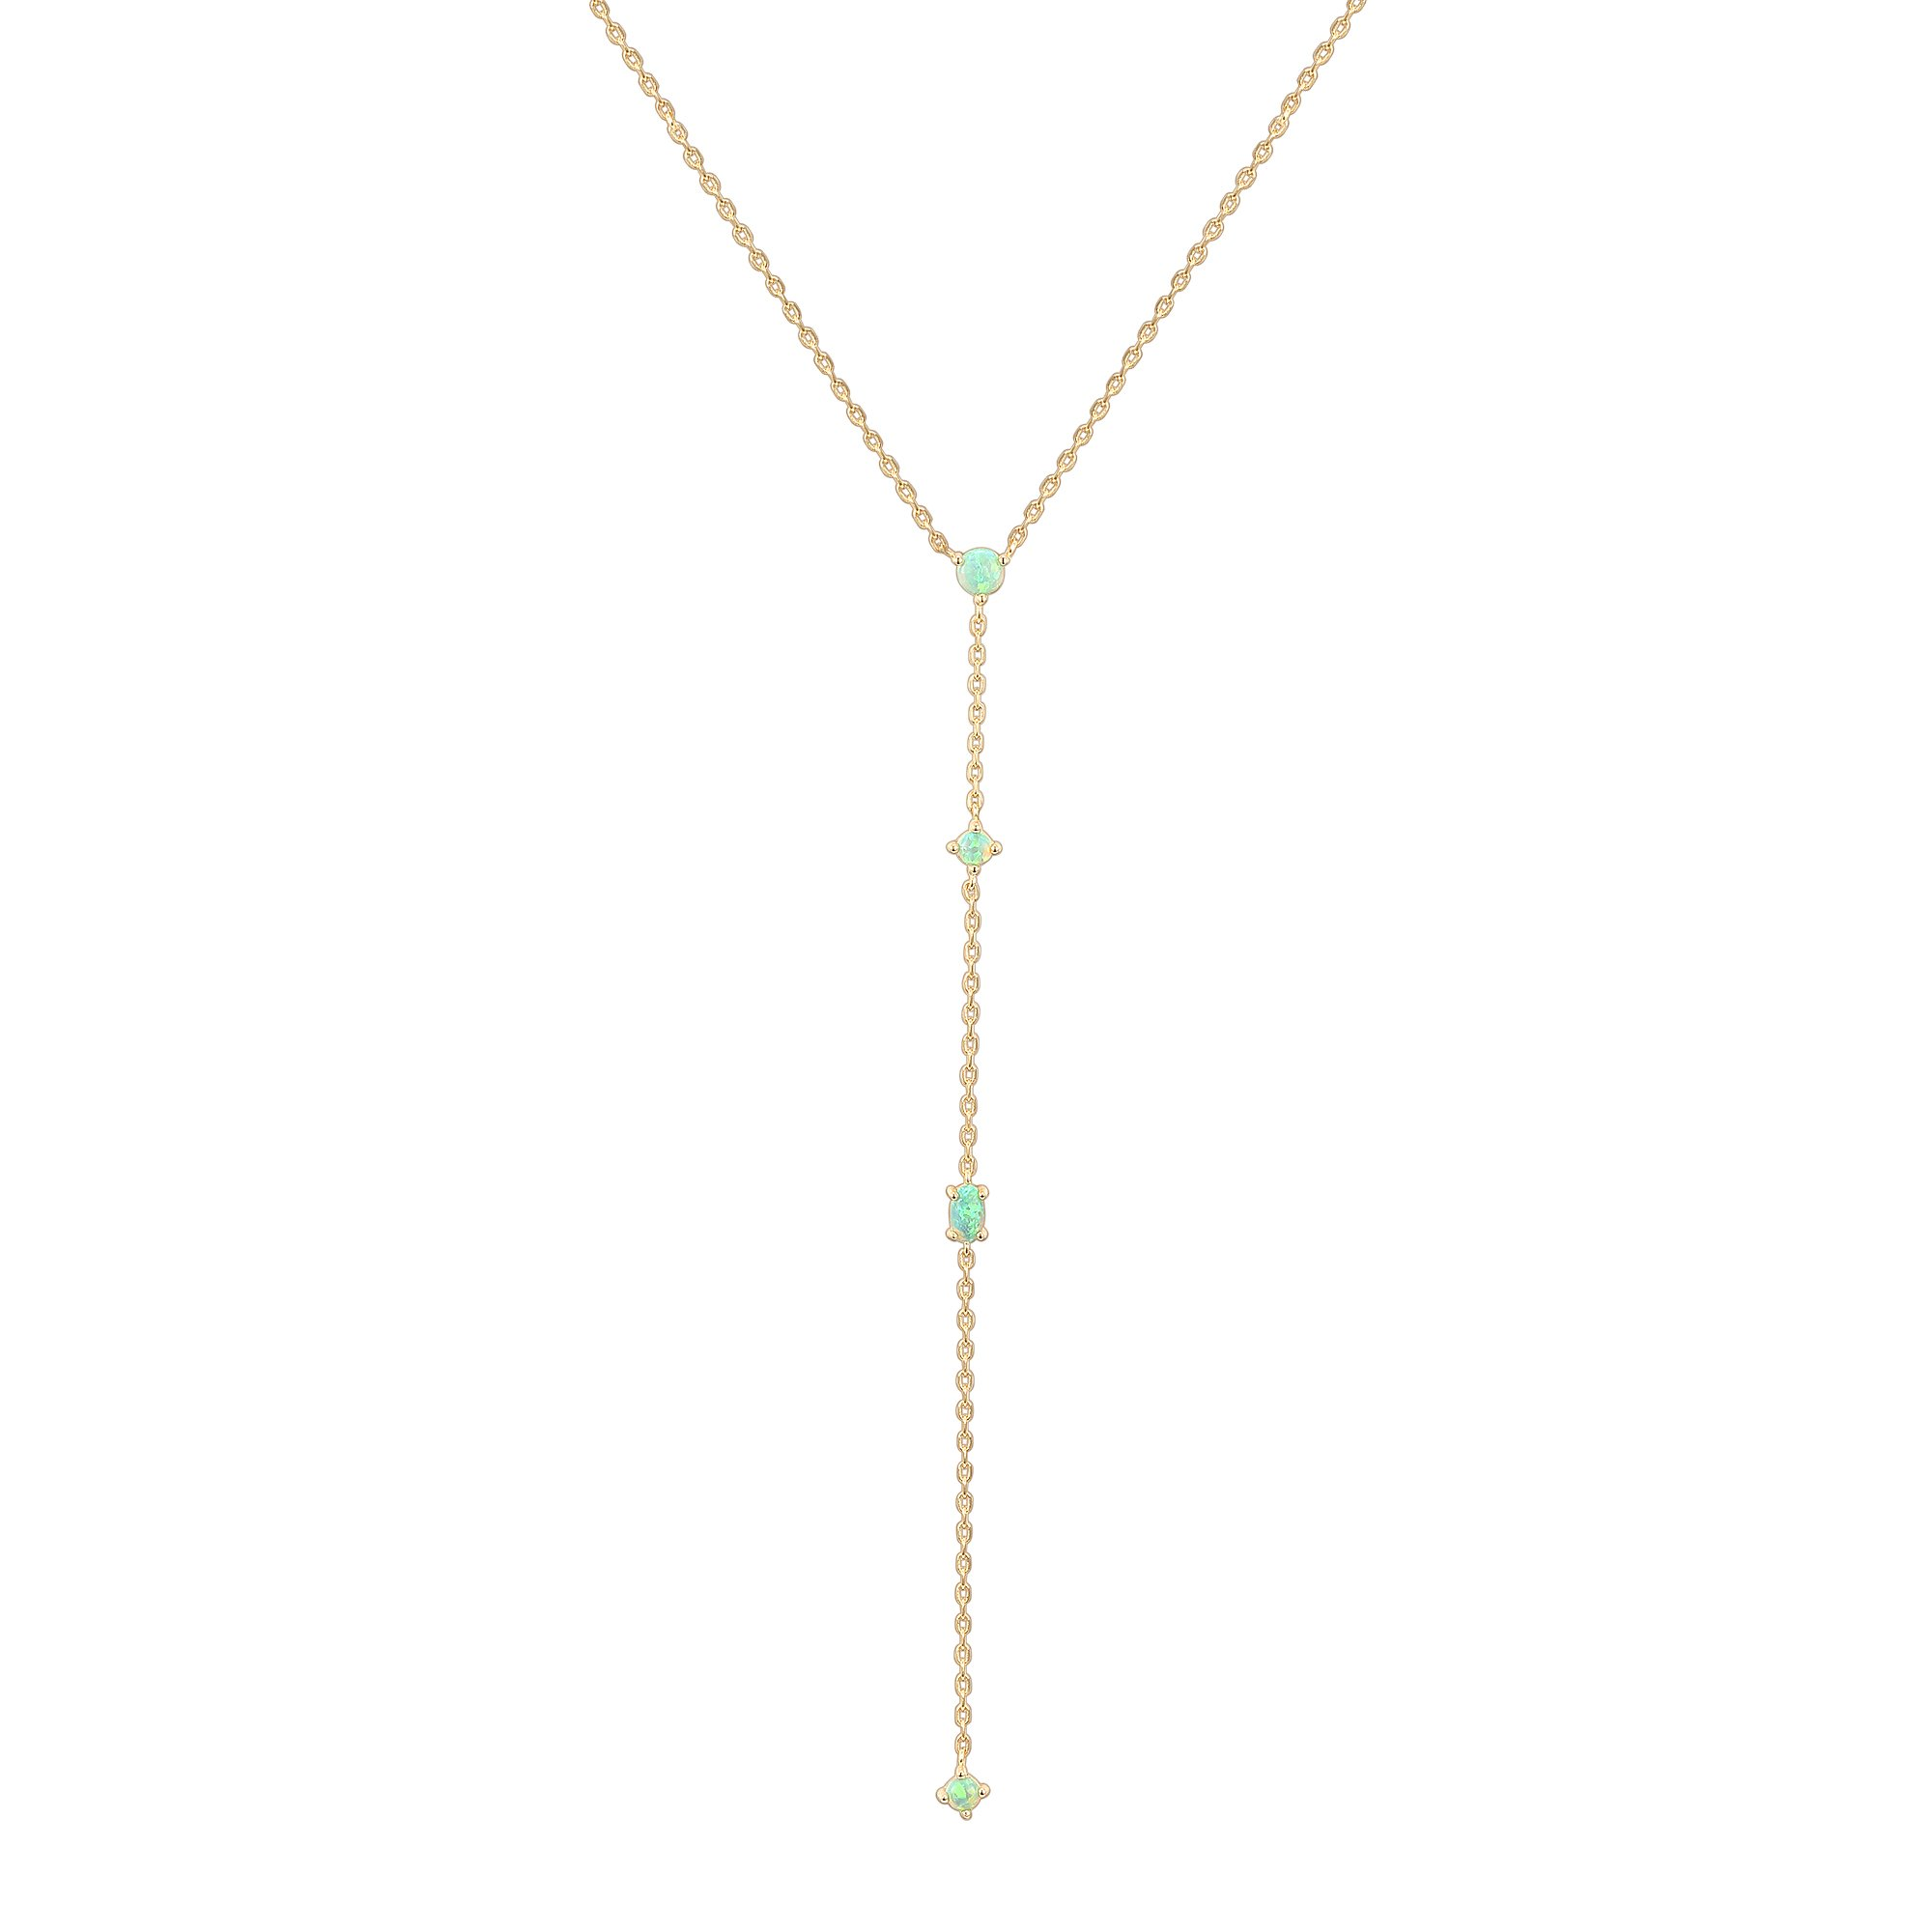 PAVOI 14K Yellow Gold Plated Lariat Necklace Pendant with Created Green Opal Necklace for Women